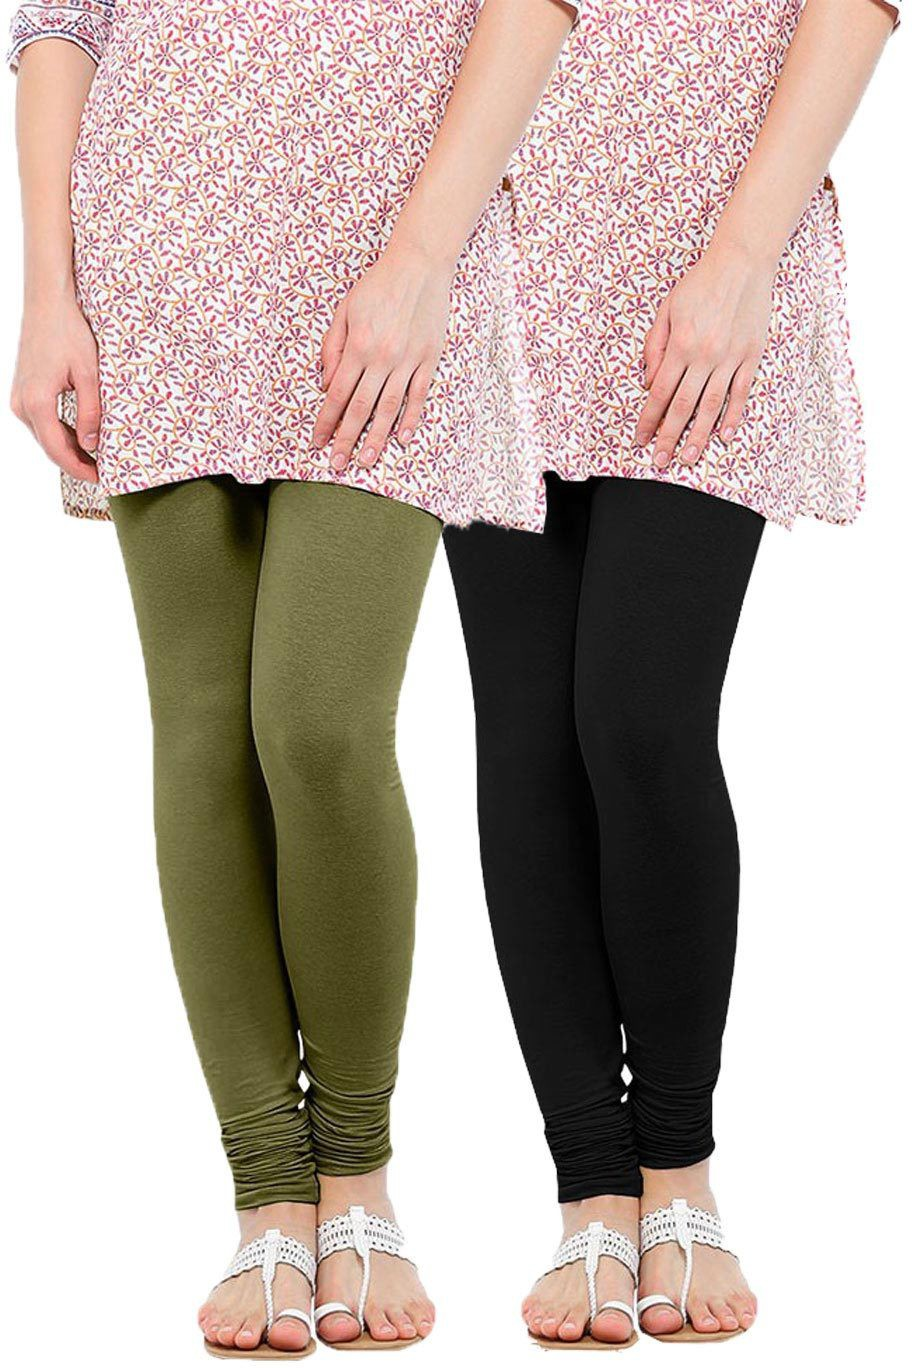 Linking Threads Womens Light Green, Black Leggings(Pack of 2)